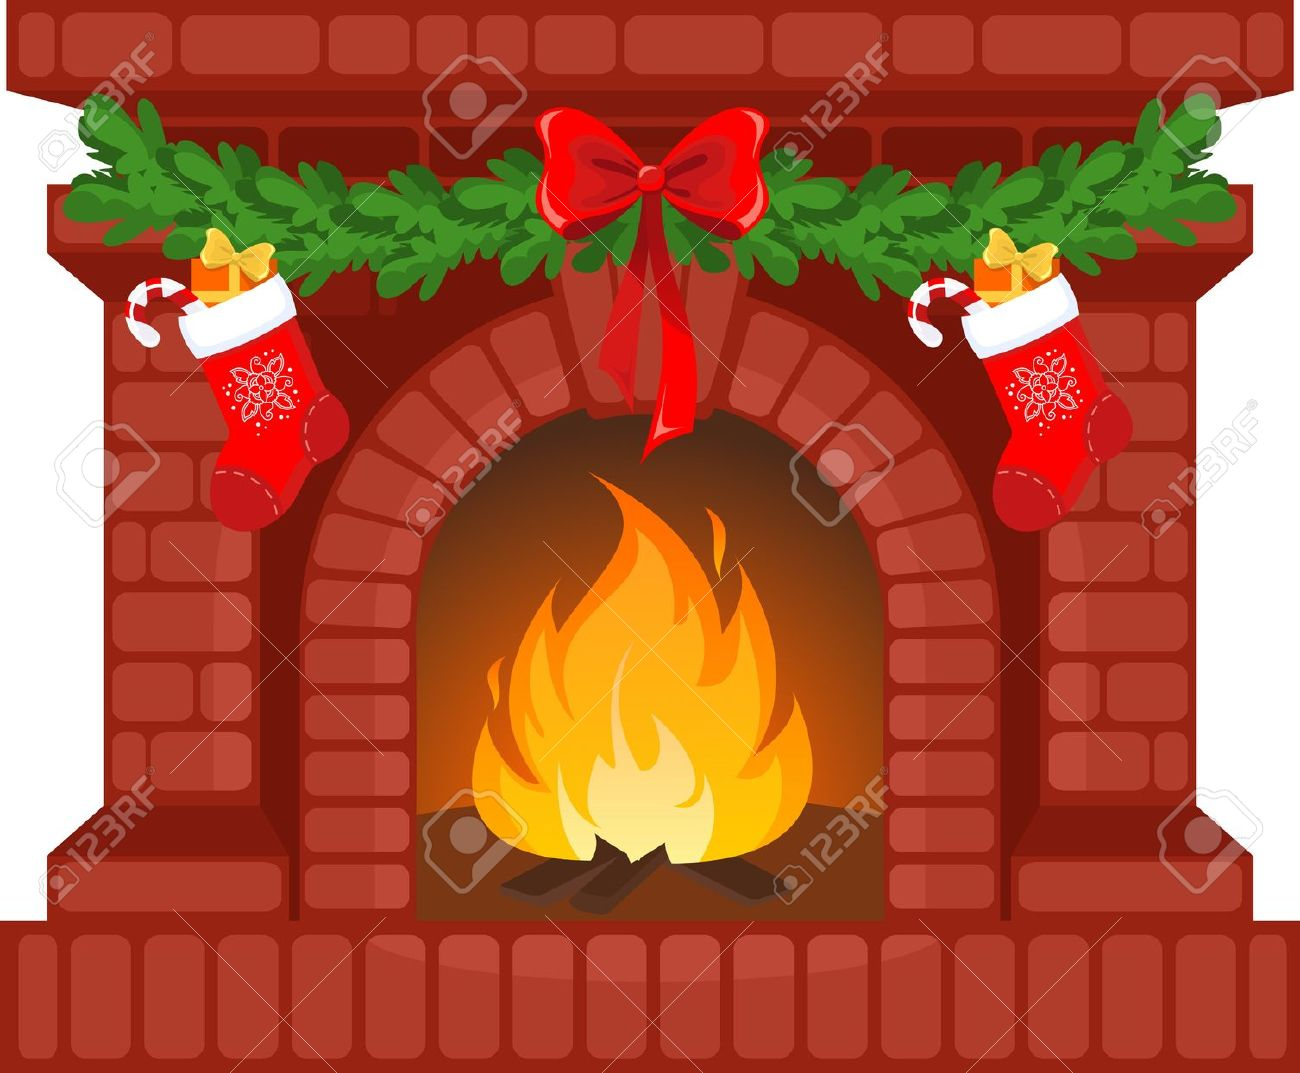 Fireplace clipart Pie fireplace Fireplace cliparts clipart